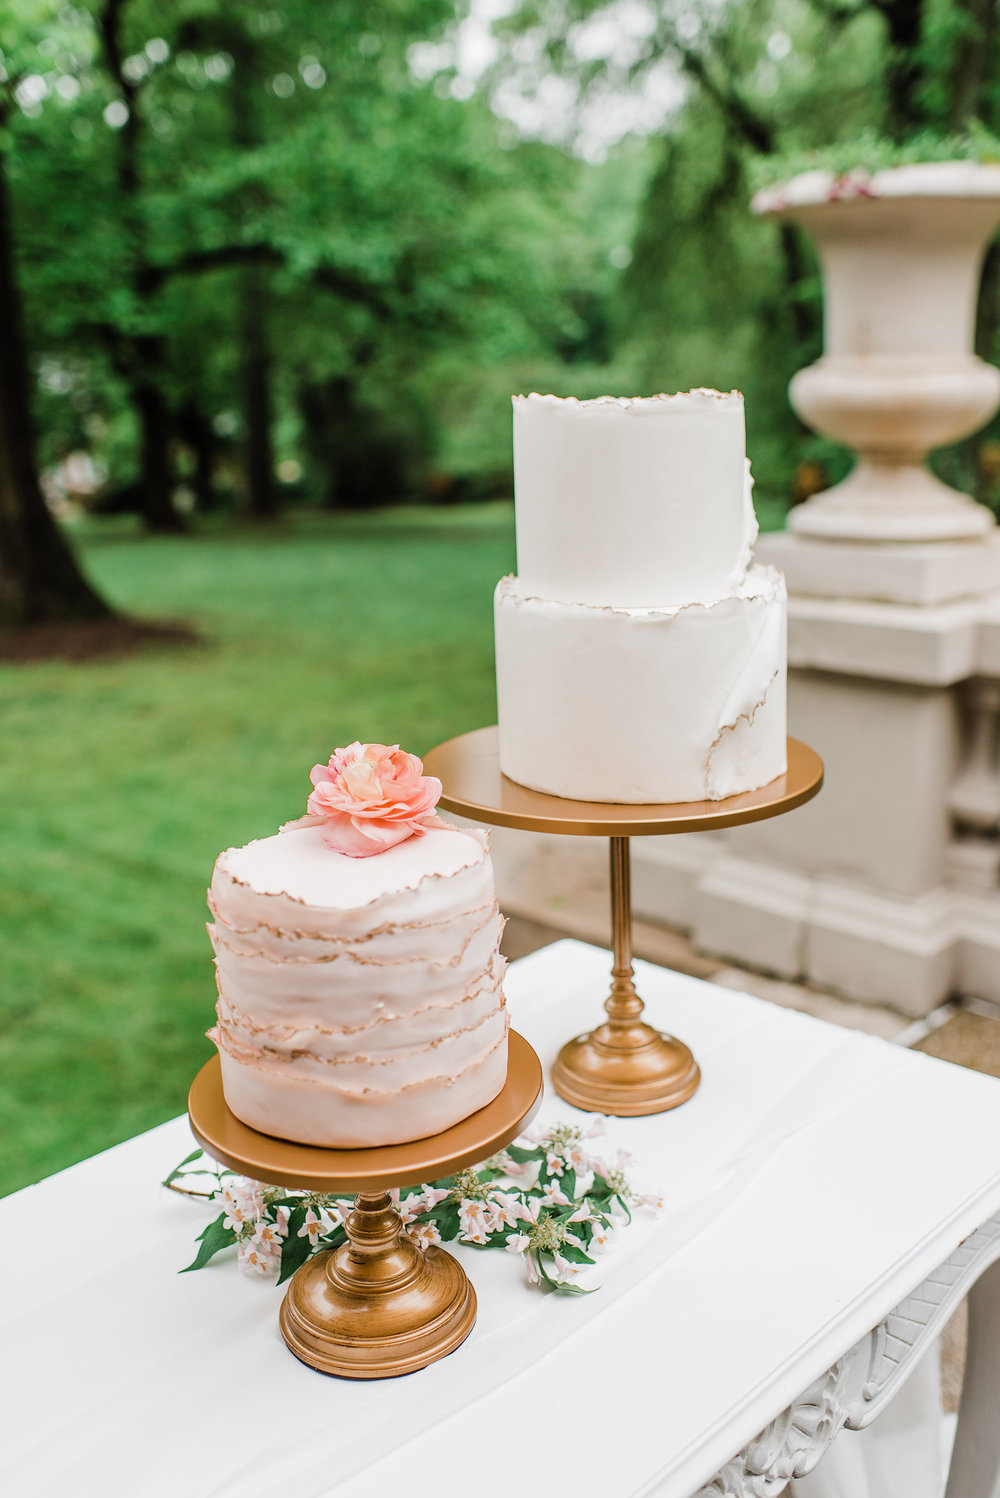 photography:   Megan Harris Photography      Opulent Treasures Antique Gold Simply Cake Stand  {sold as a set of three}    Wedding Cakes ...  The Cake Studio  -  @thecakestudiobaltimore